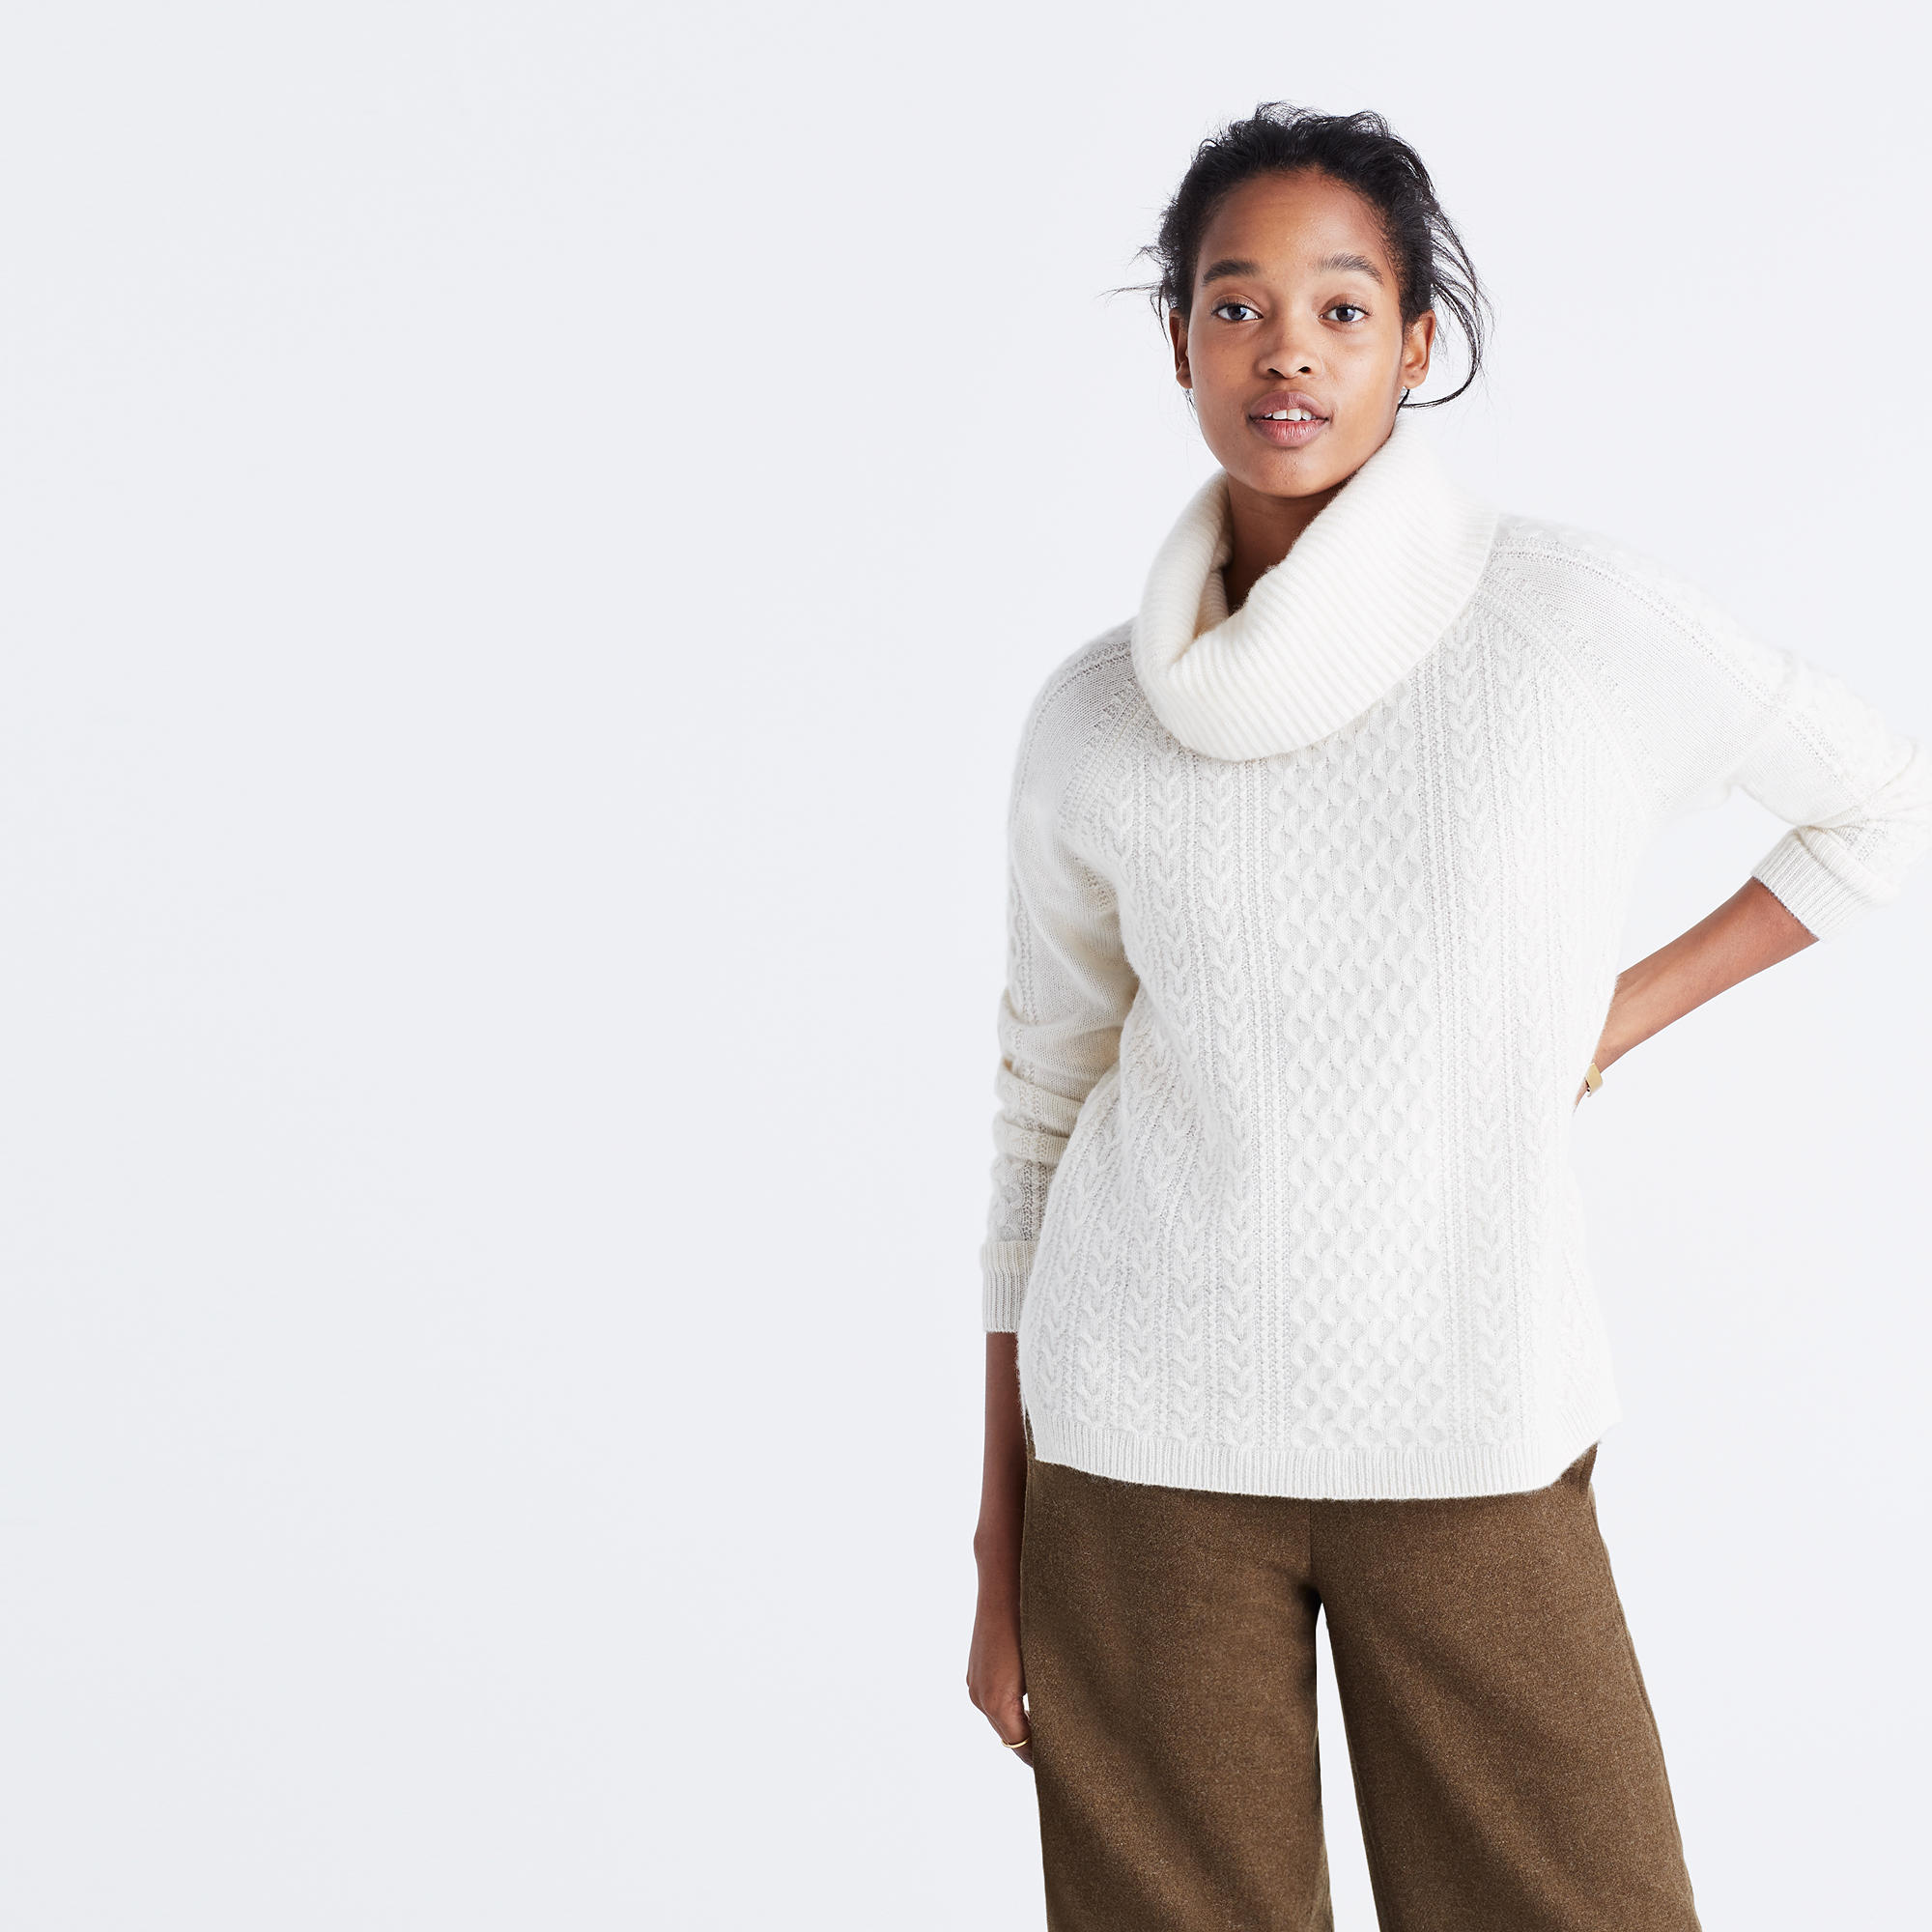 Cashmere Convertible Turtleneck Sweater in Cableknit : cashmere ...